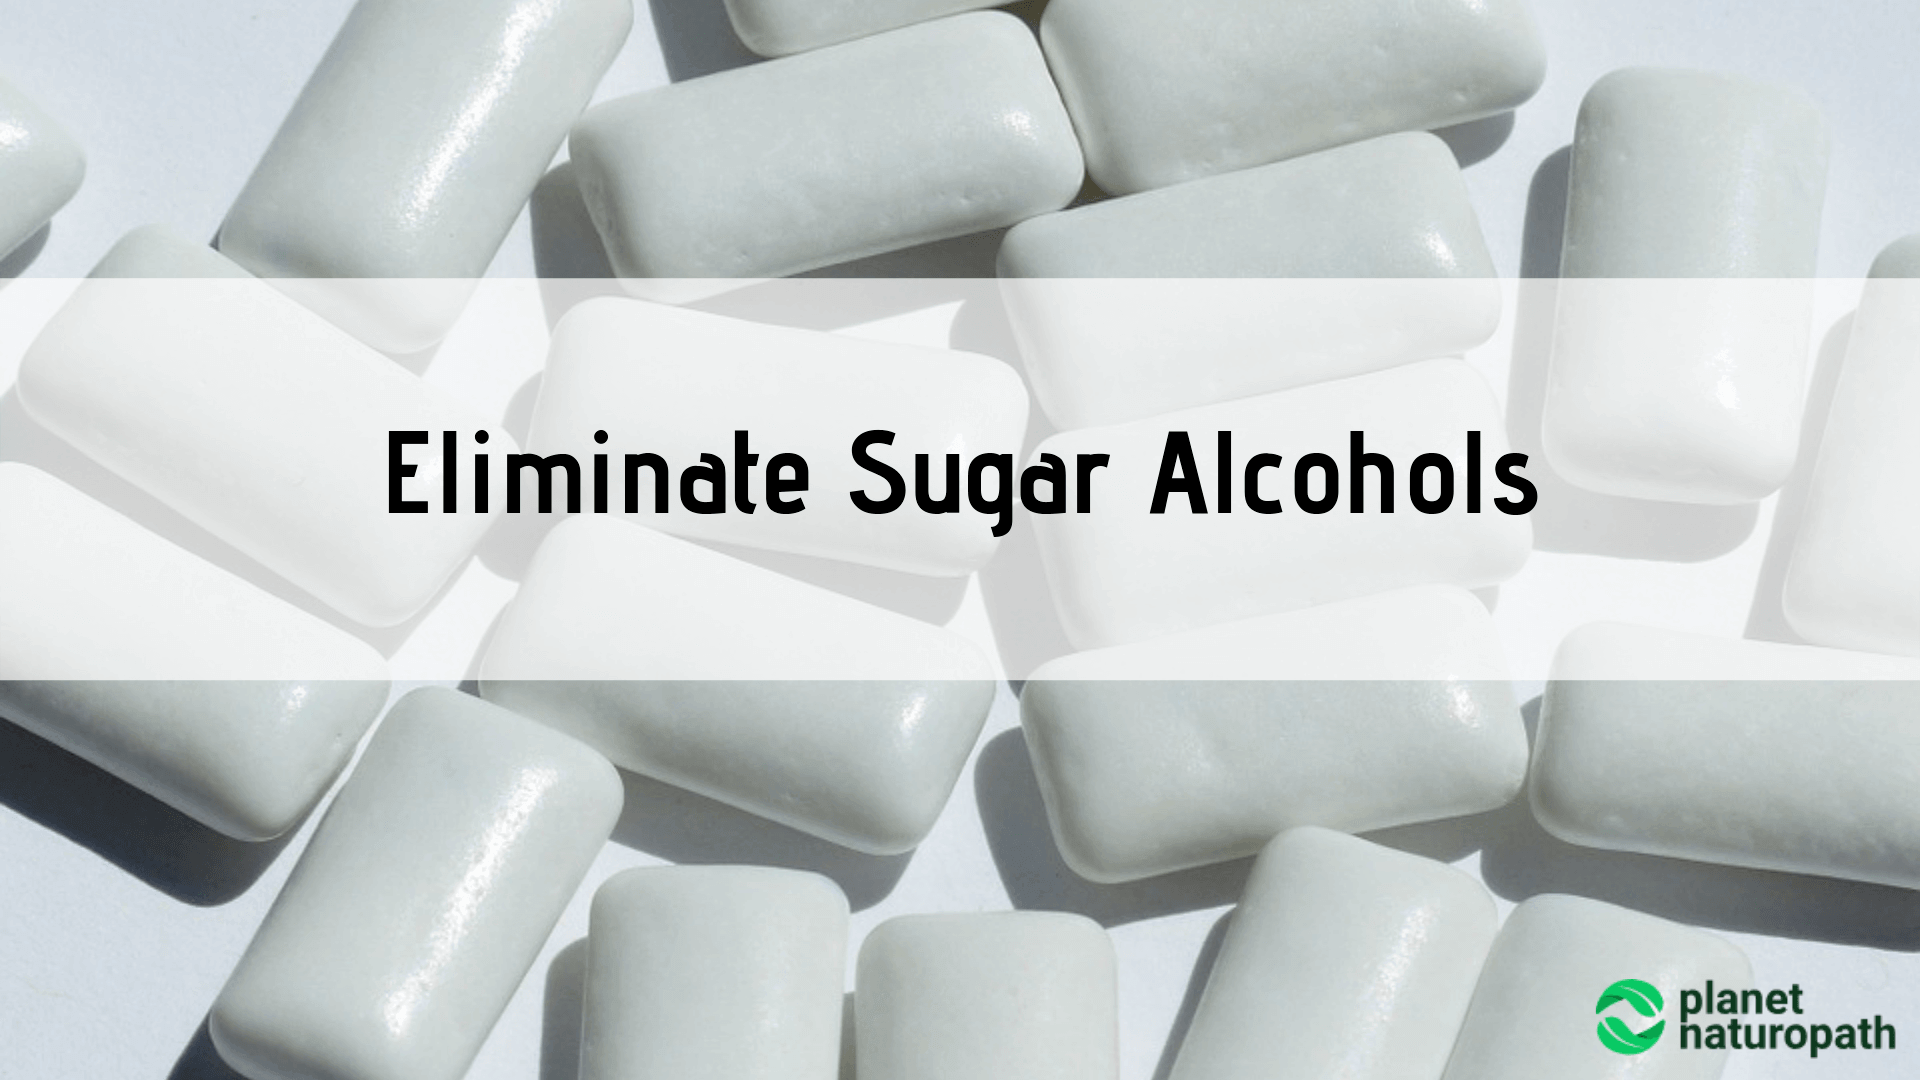 Eliminate-Sugar-Alcohols